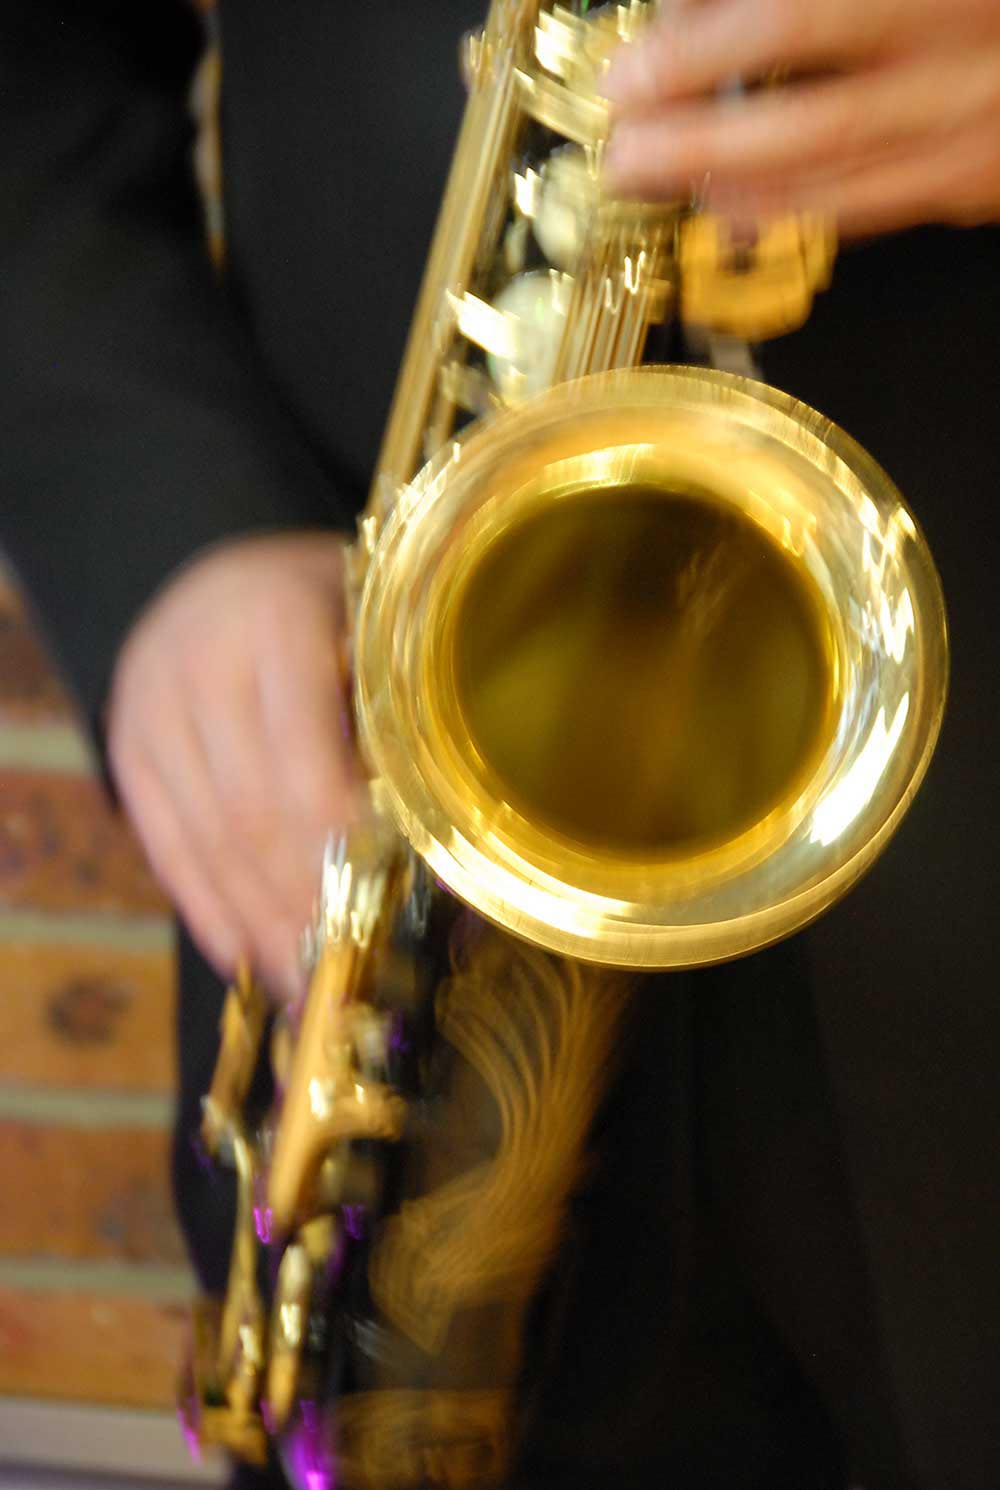 Saxophone detail at wedding party